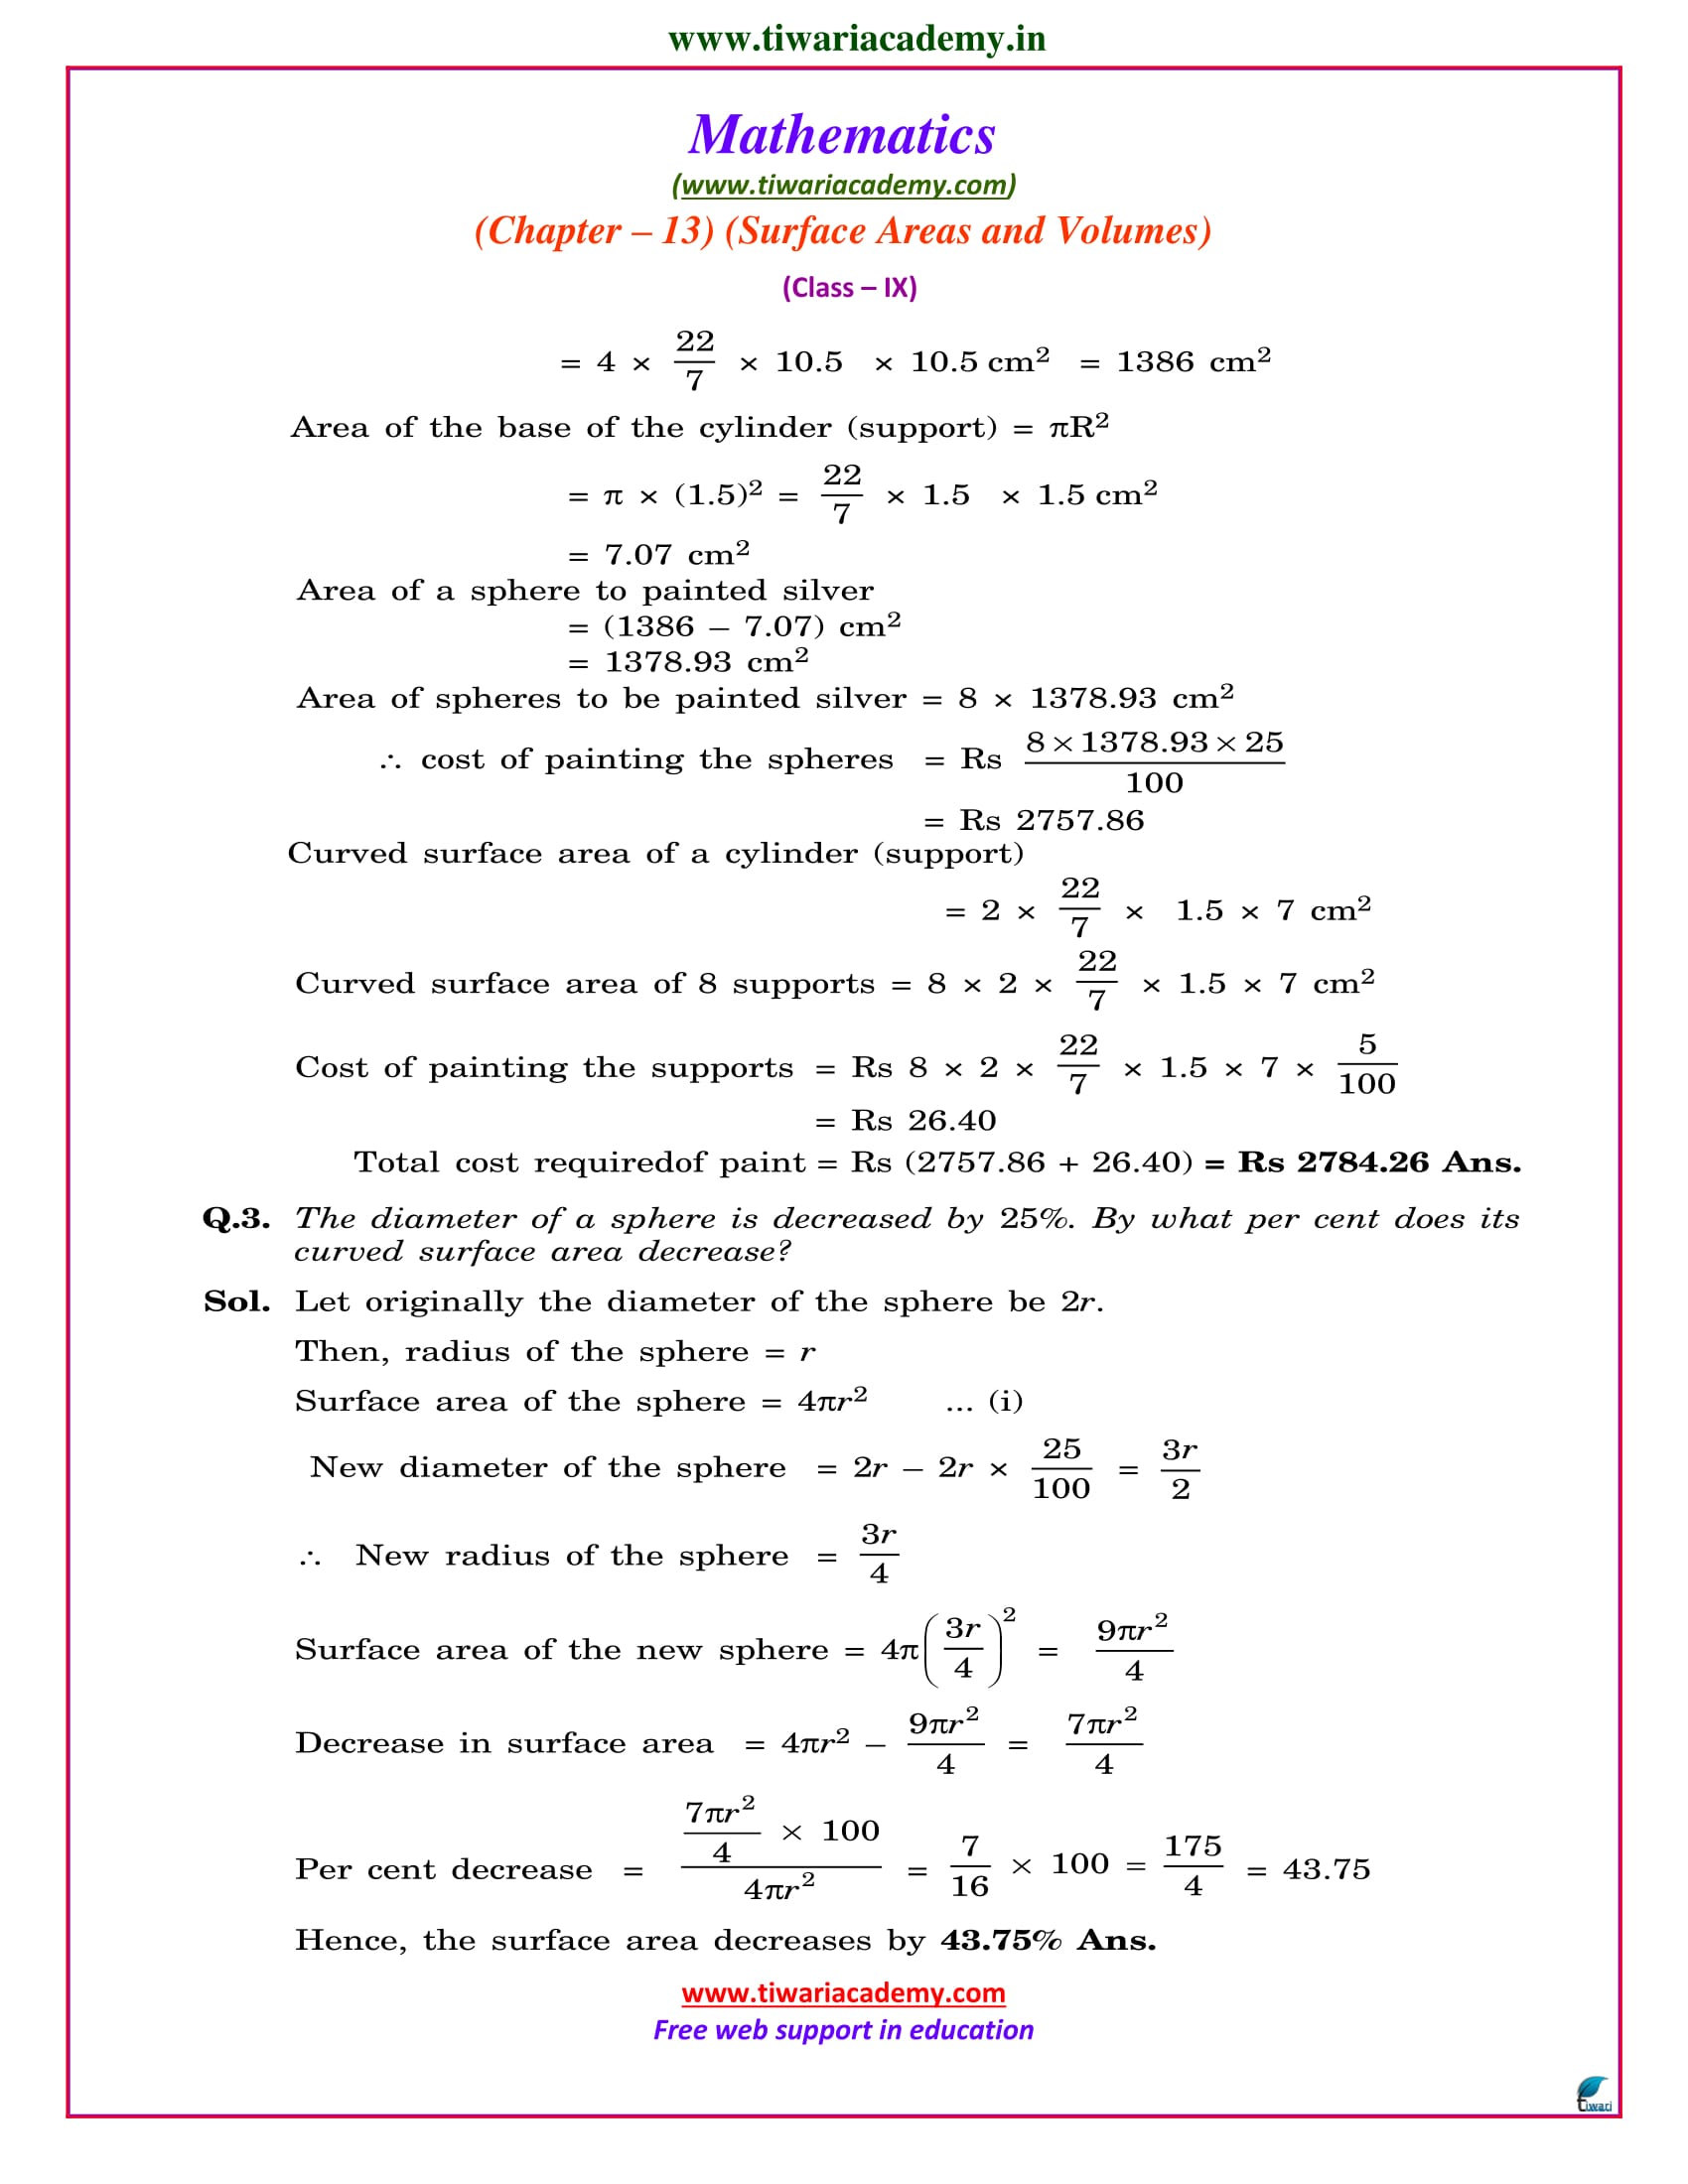 9 maths chapter 13 optional exercise solutions